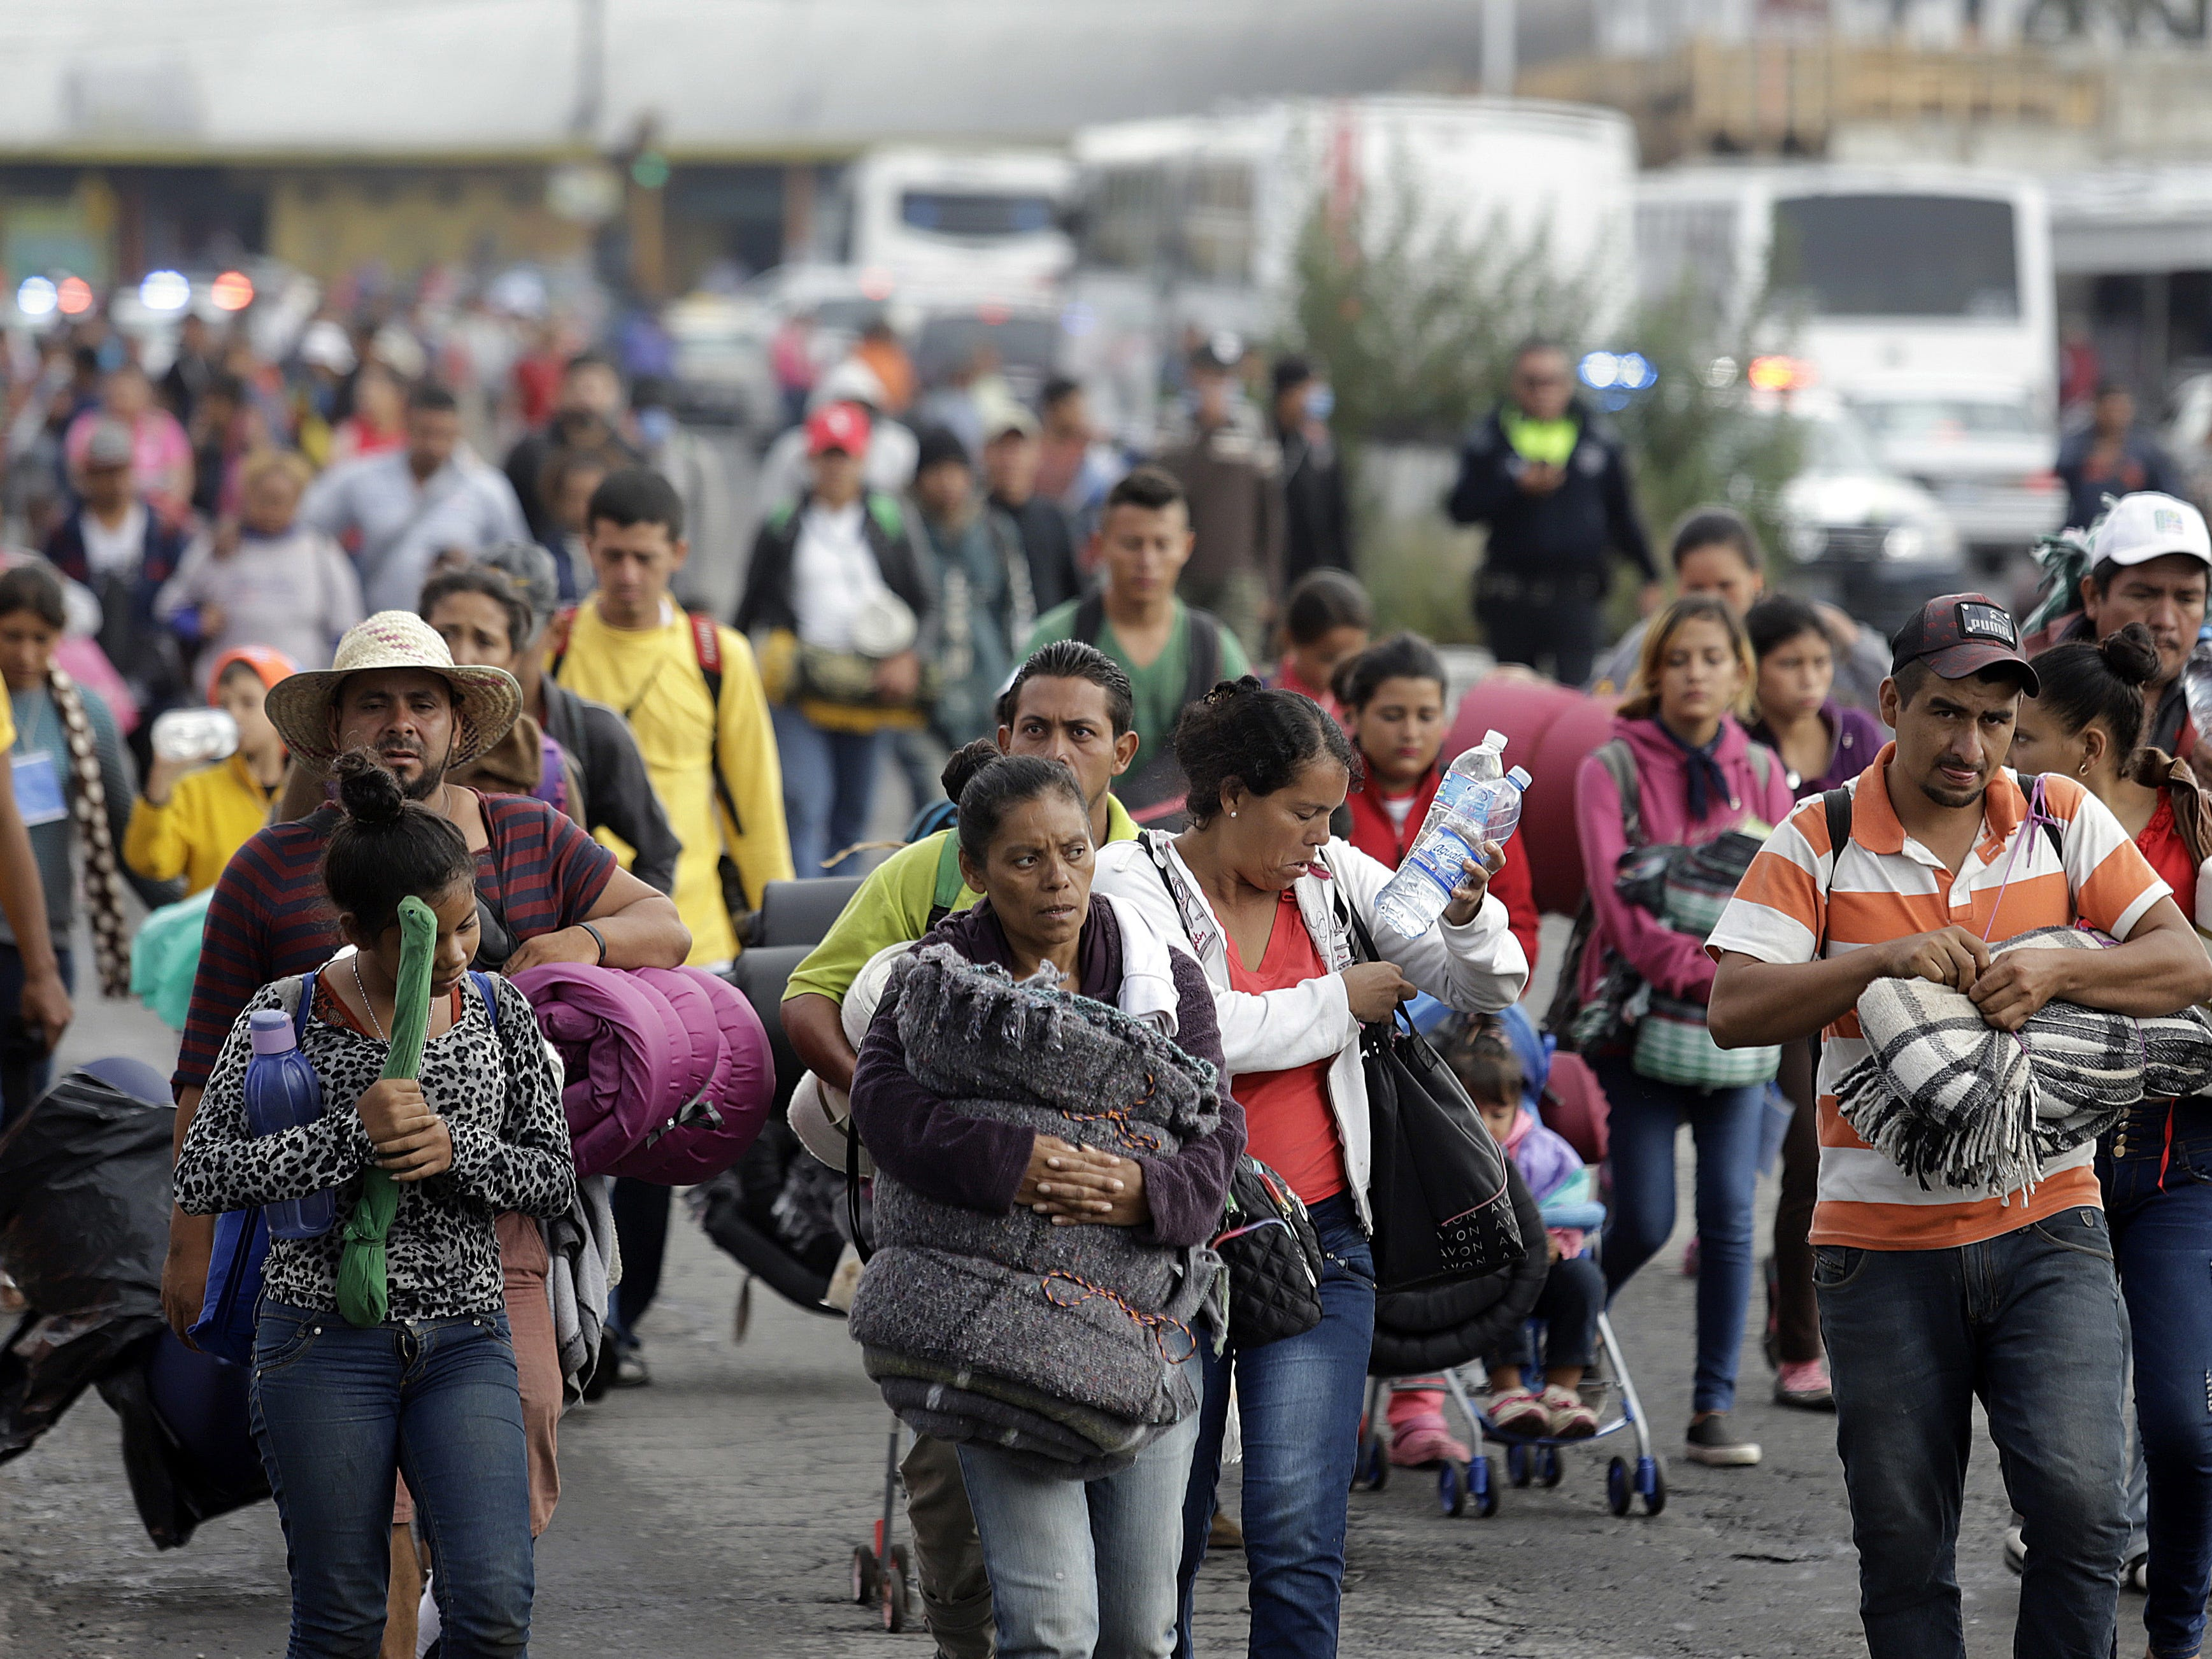 Members of the migrant caravan arrive at the shelter of the Church of the Assumption, in the city of Puebla, in Puebla state, Mexico, Nov. 4, 2018.